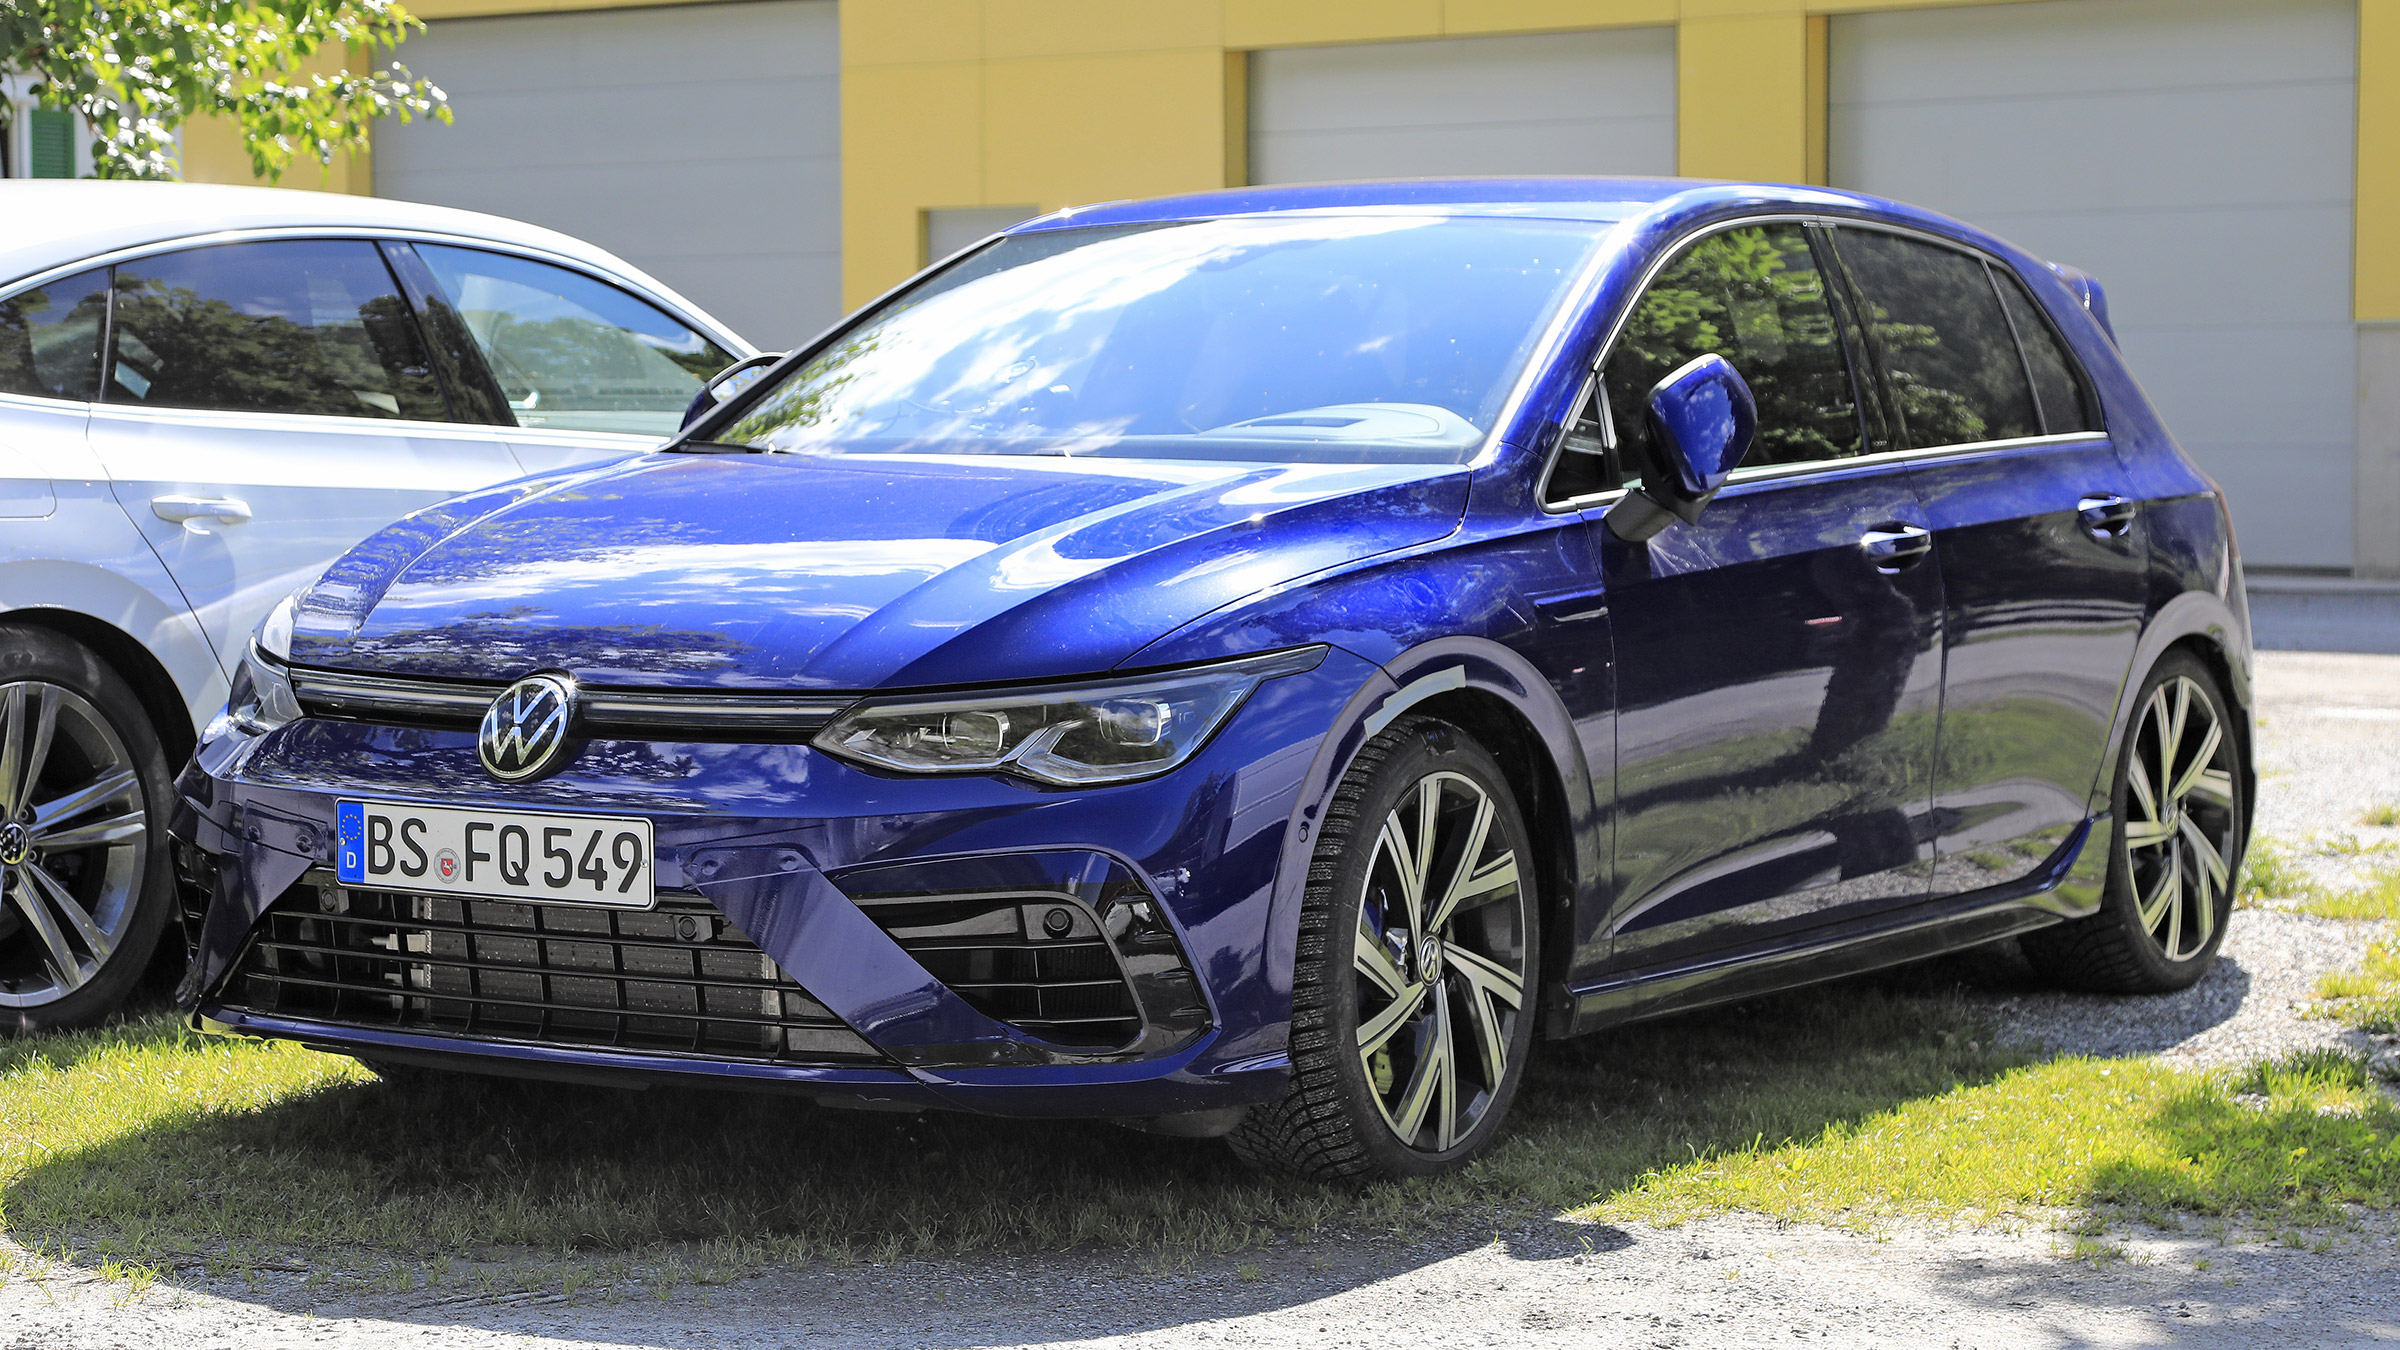 New 2020 Volkswagen Golf R: prices, specs and launch date | Auto Express